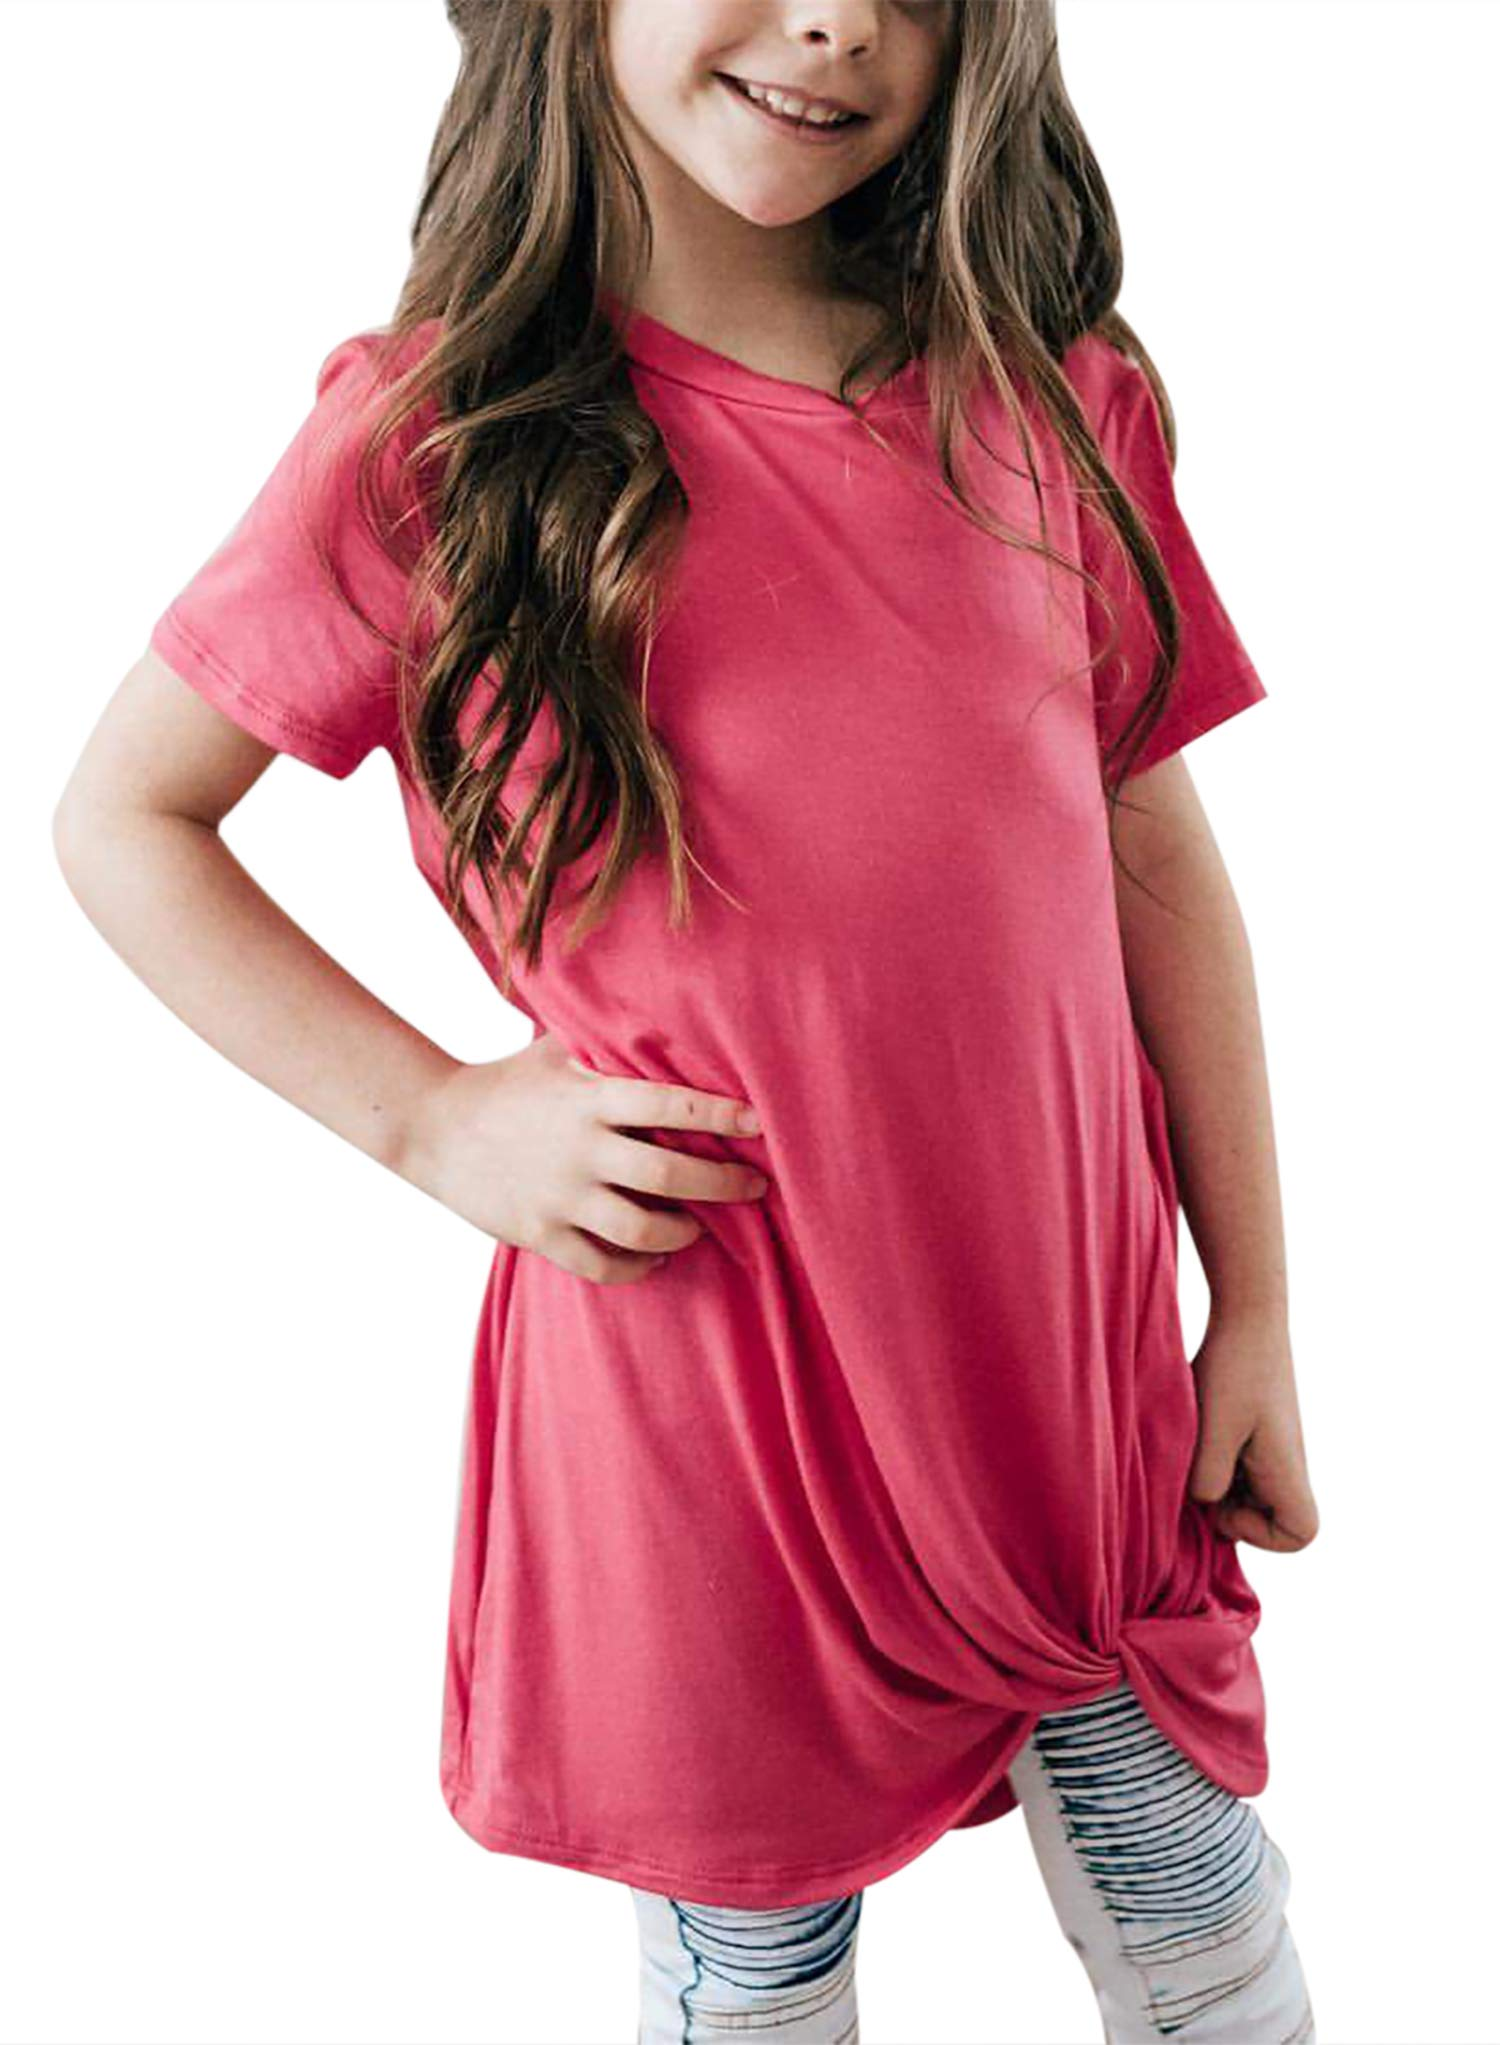 Bulawoo Girls Clothing Casual Short Sleeve Summer Tops Little Girls Knot Front Fashion Tee Shirts Size 4-13 10-11 Years Rose Red